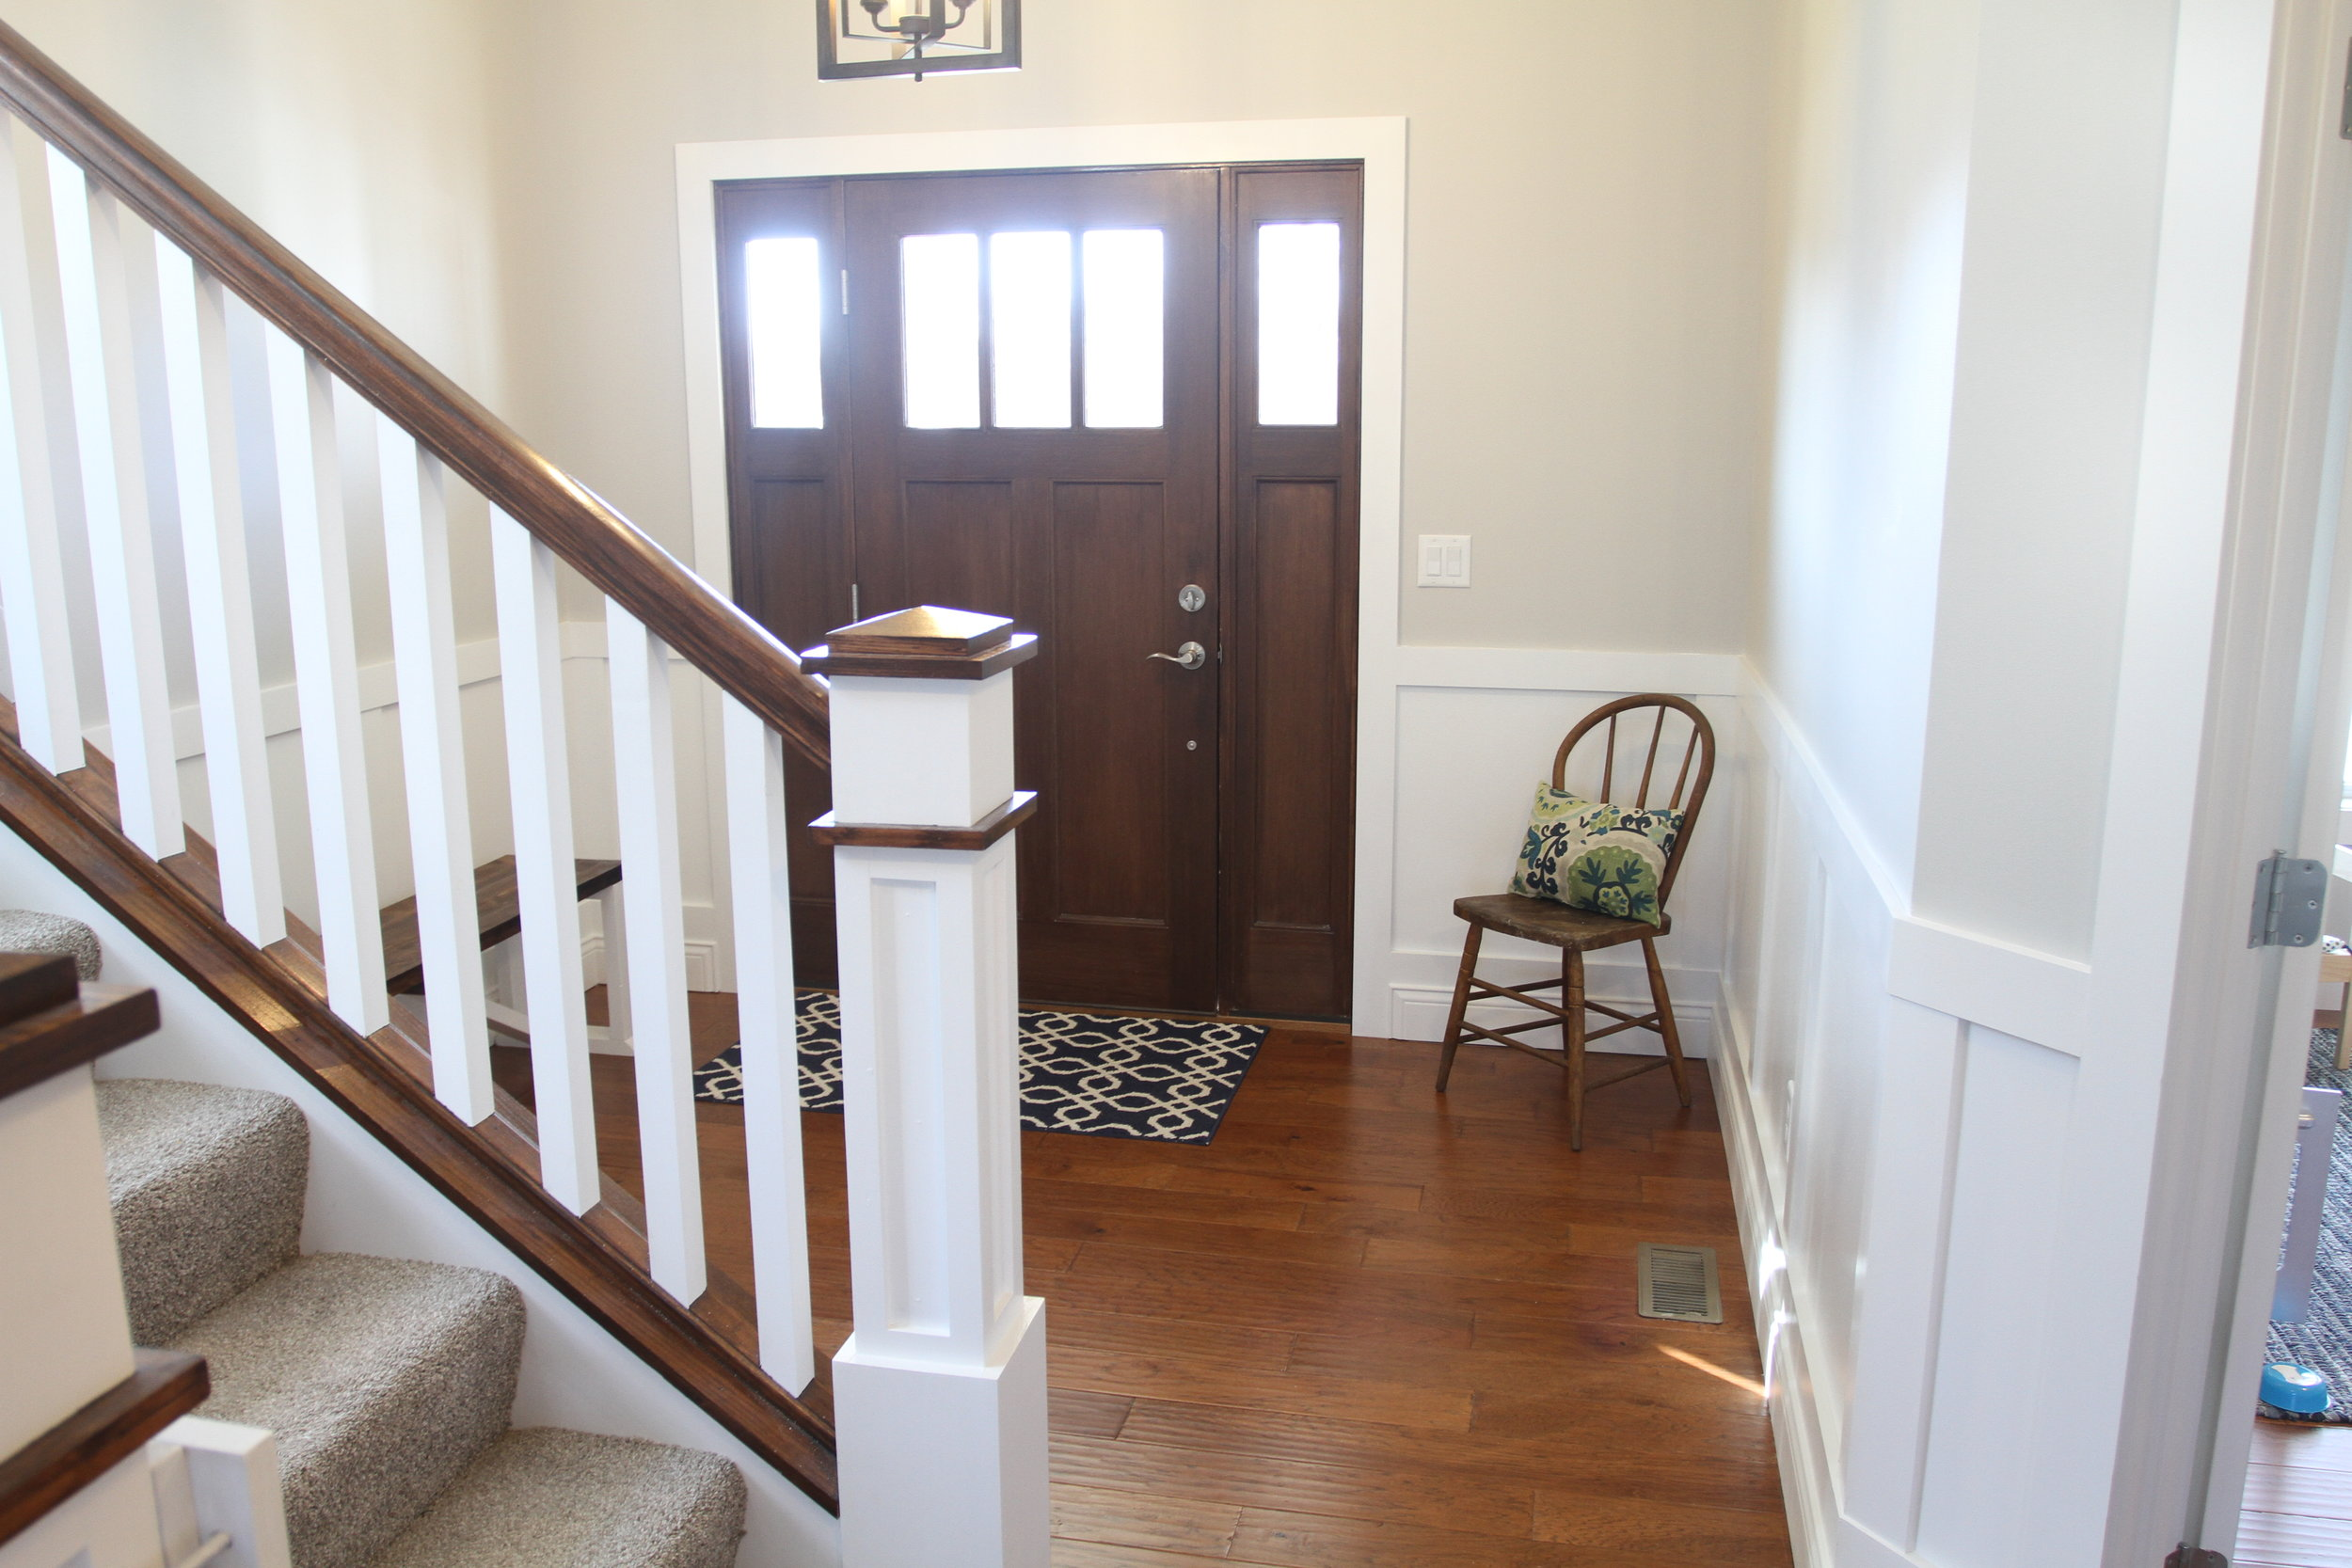 Stairs and open entryway